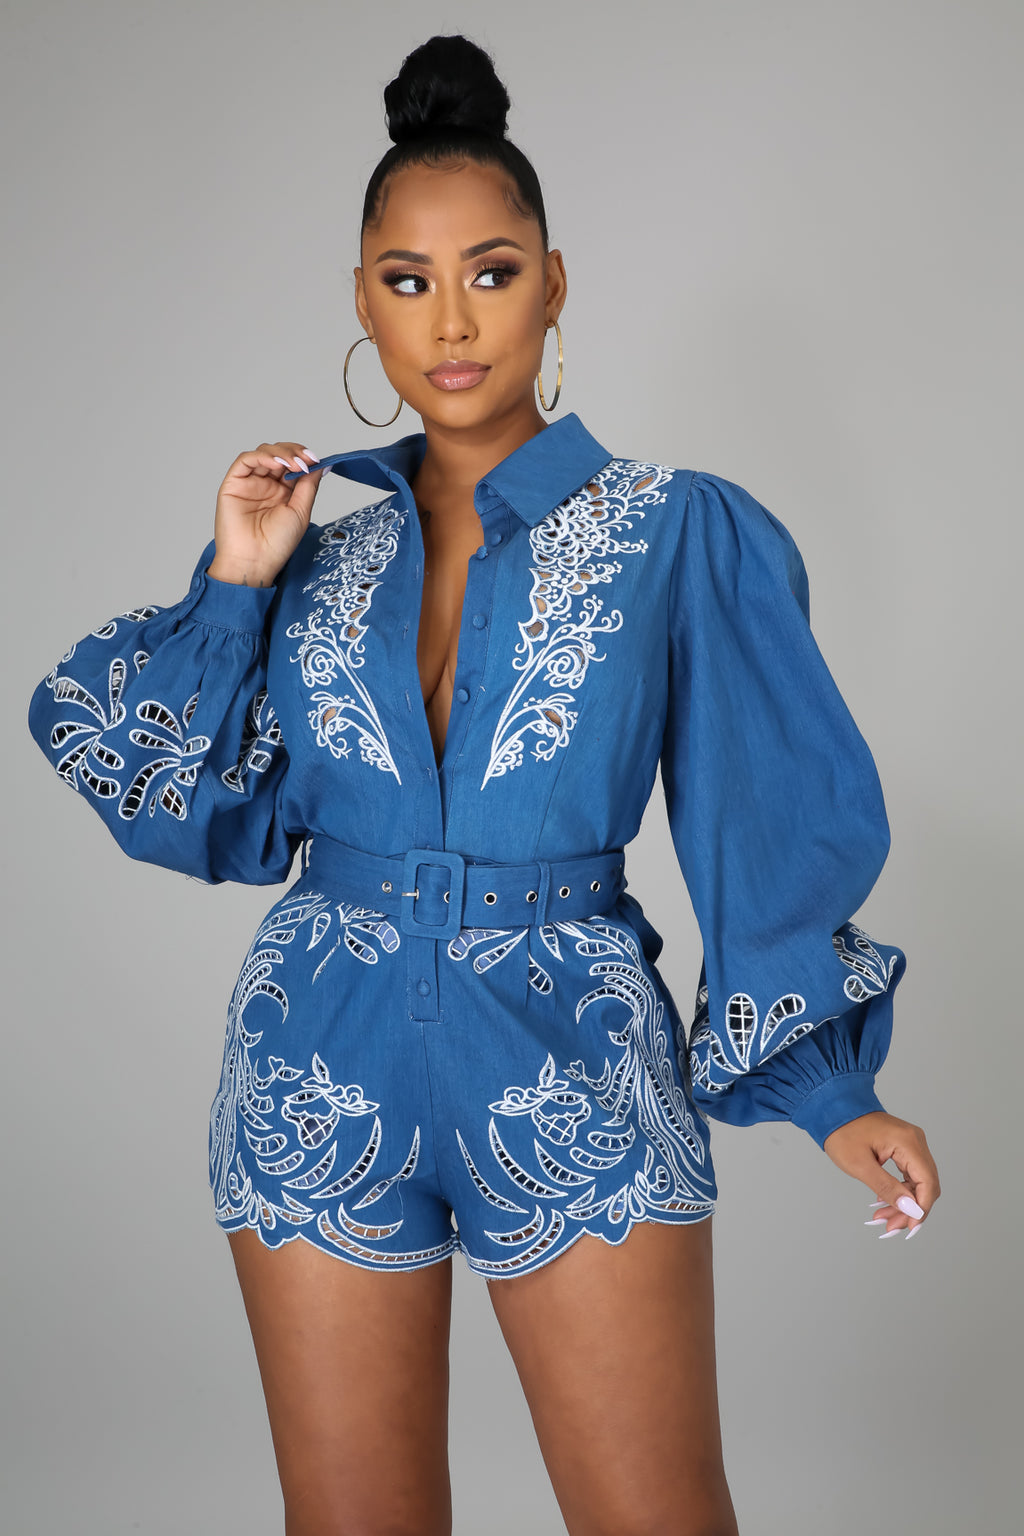 Brunch Queen Romper